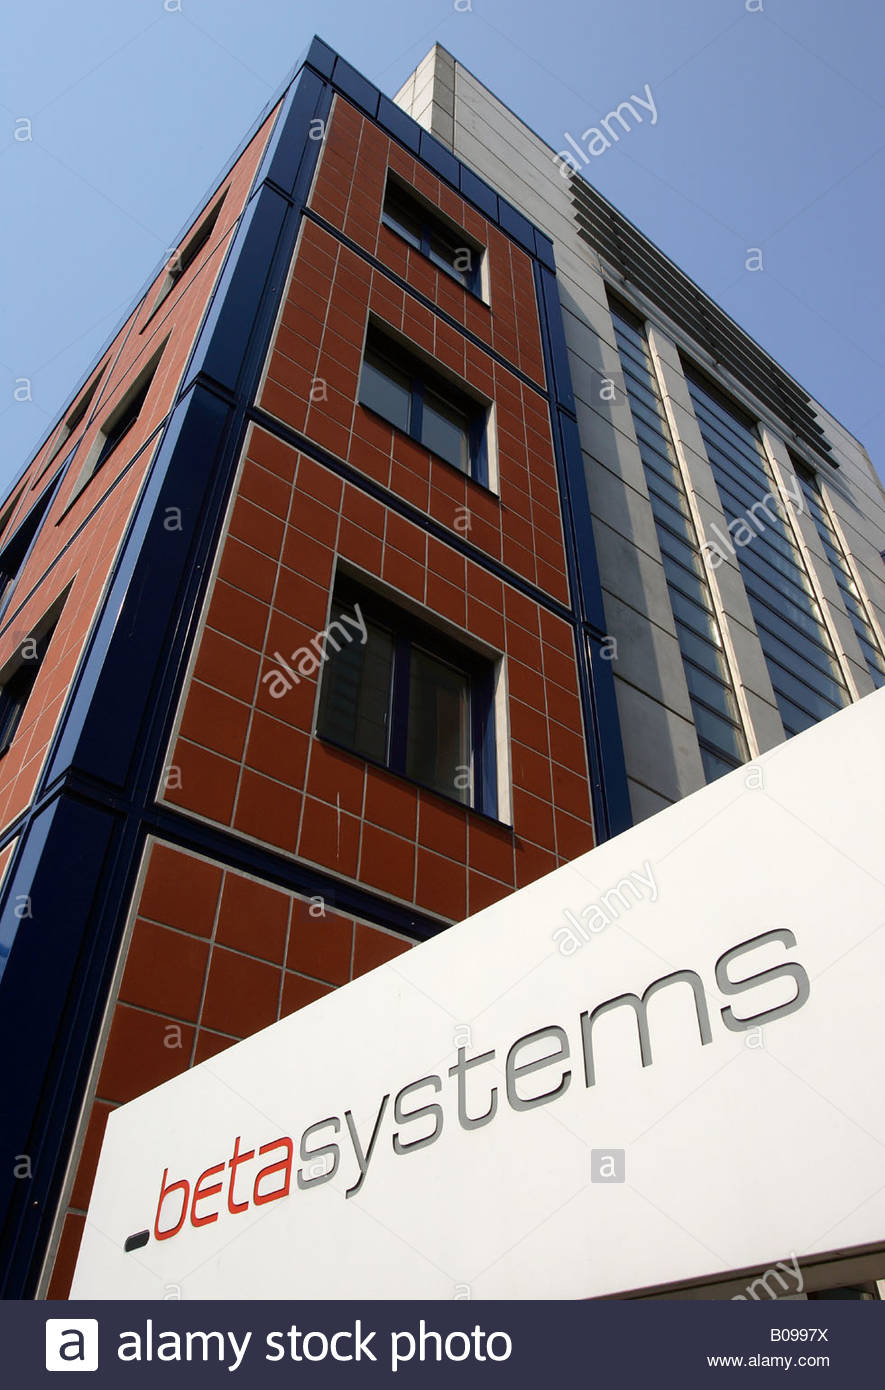 betasystems place of business in Berlin, Germany, Europe - Stock Image